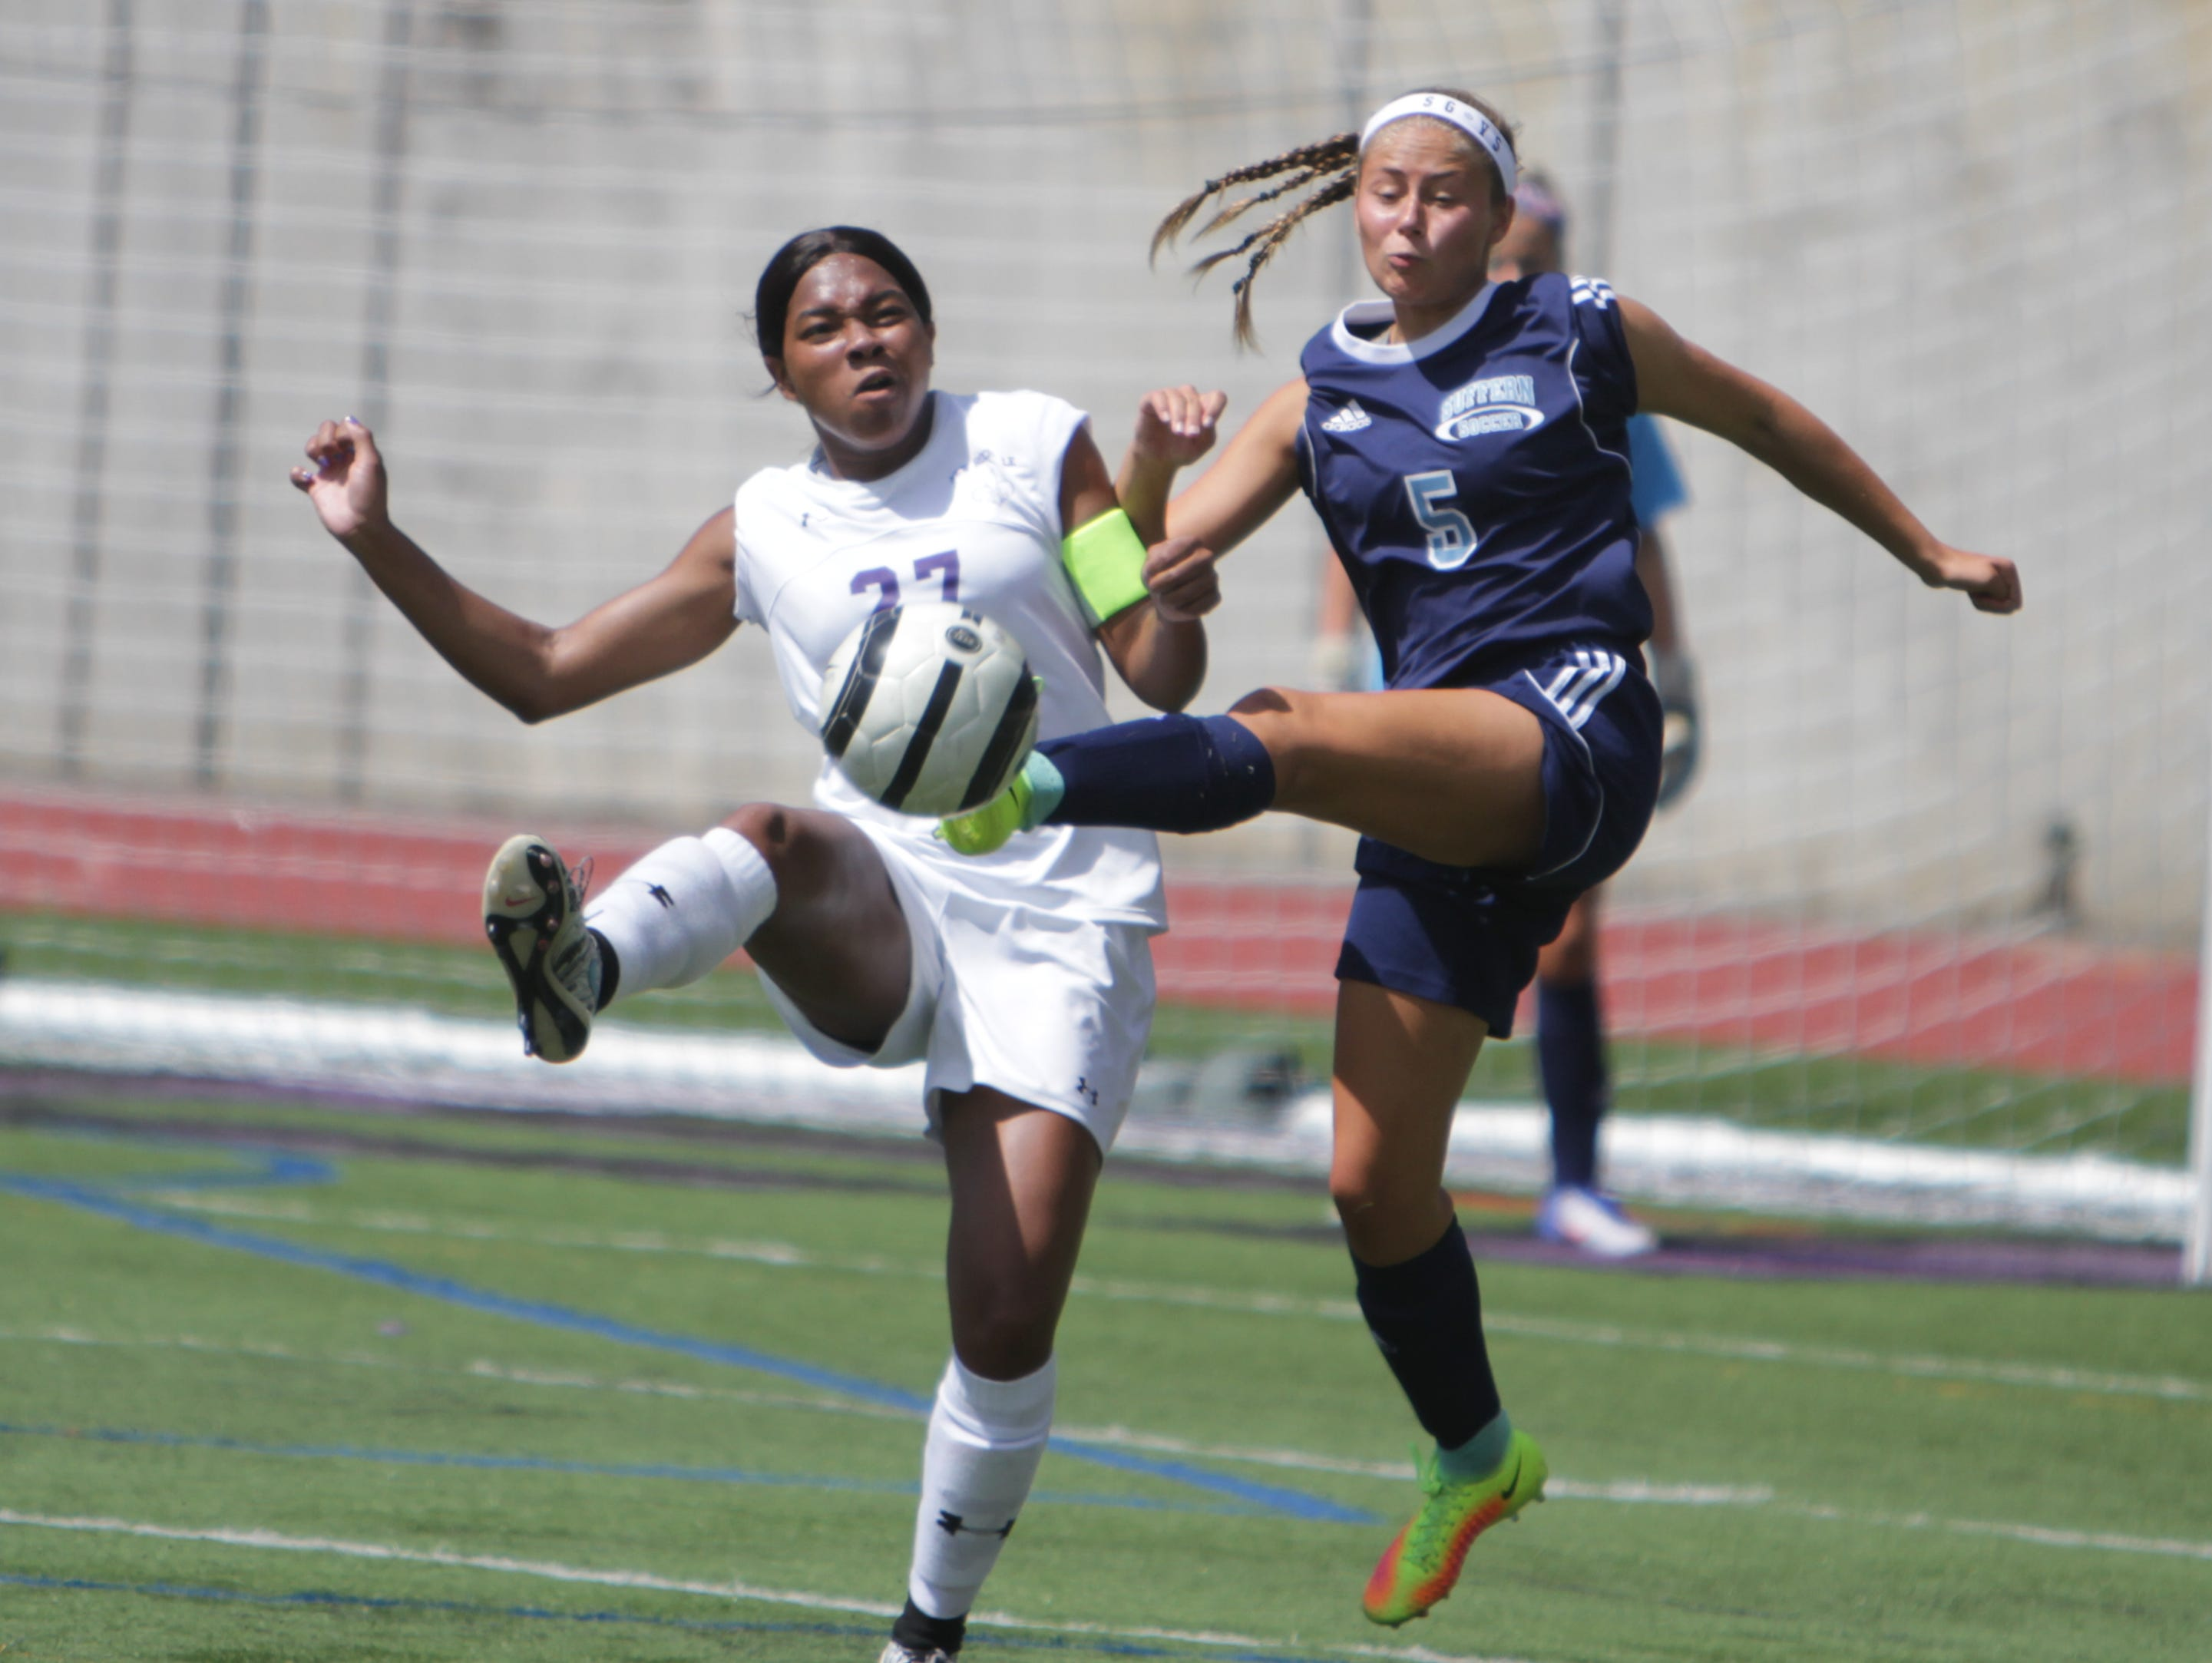 New Rochelle's Sydney Jasper (27) and Suffern's Abby Bosco (5) battle for possession of the ball during a Section 1 girls soccer game between New Rochelle and Suffern at New Rochelle High School Friday, Sept. 2. Suffern won 4-1.